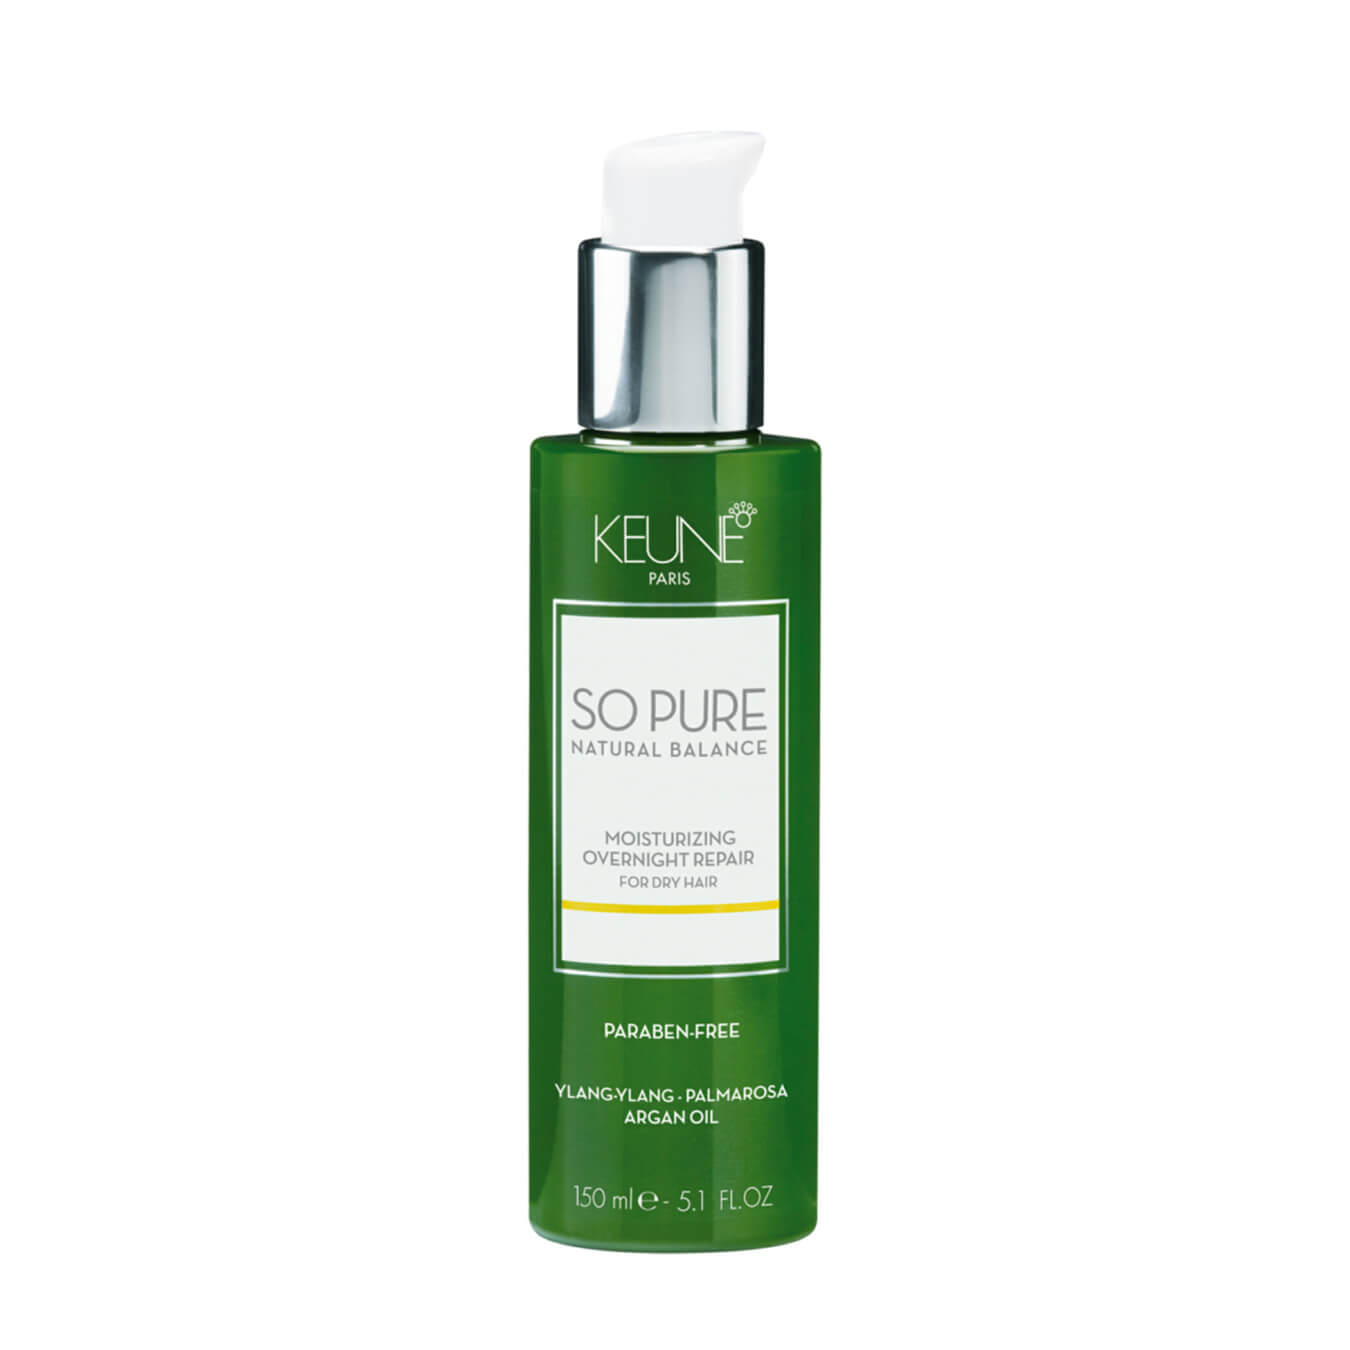 Koop Keune So Pure Moisturizing Overnight Repair 150ml